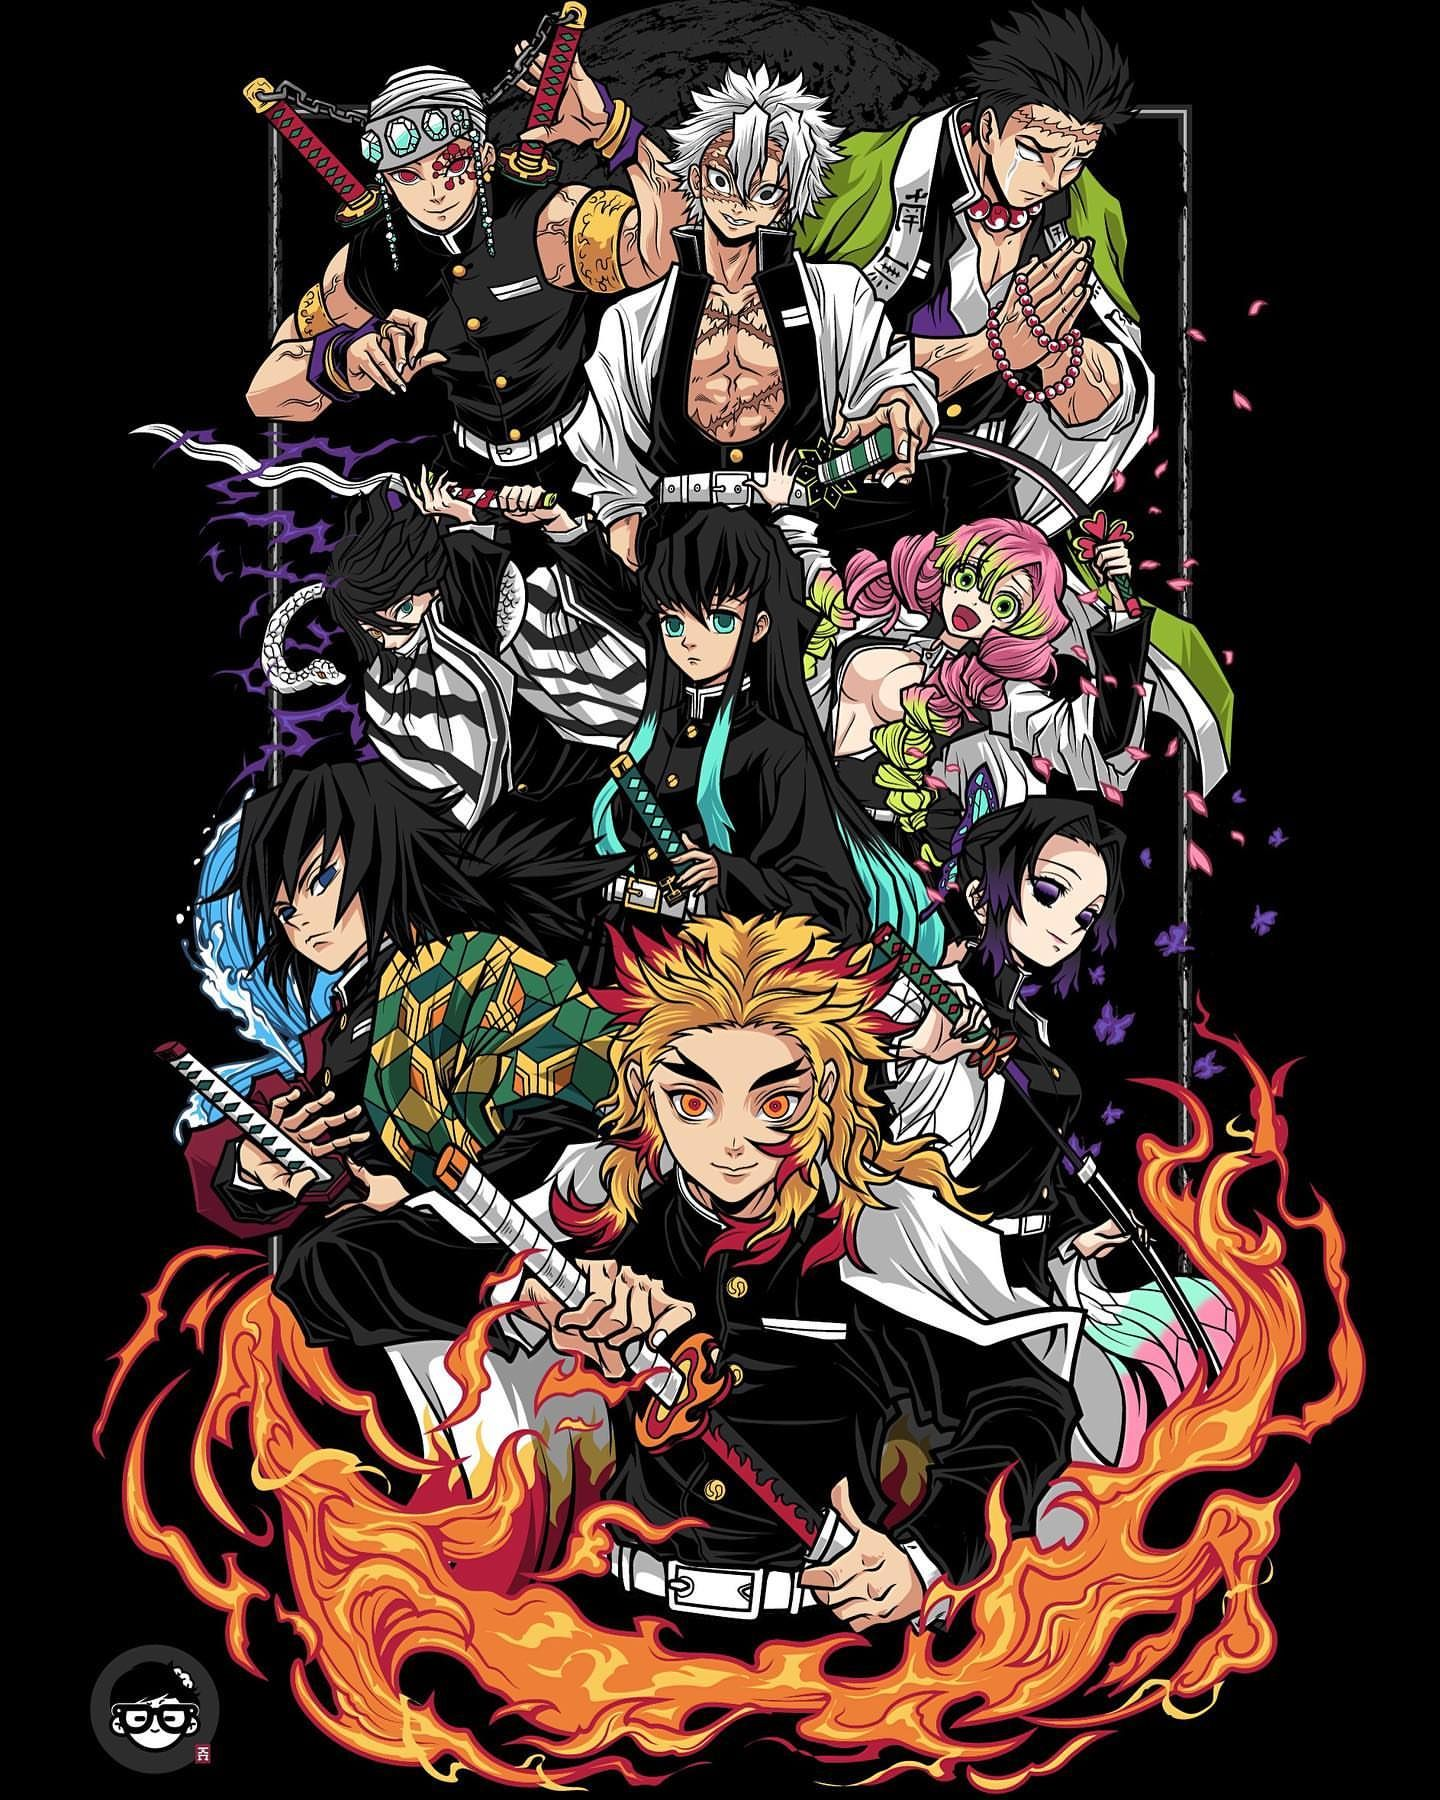 The Pillars Kimetsu No Yaiba Anime Anime Wallpaper Anime Art Rengoku laughs while mitsuri giggles. the pillars kimetsu no yaiba anime